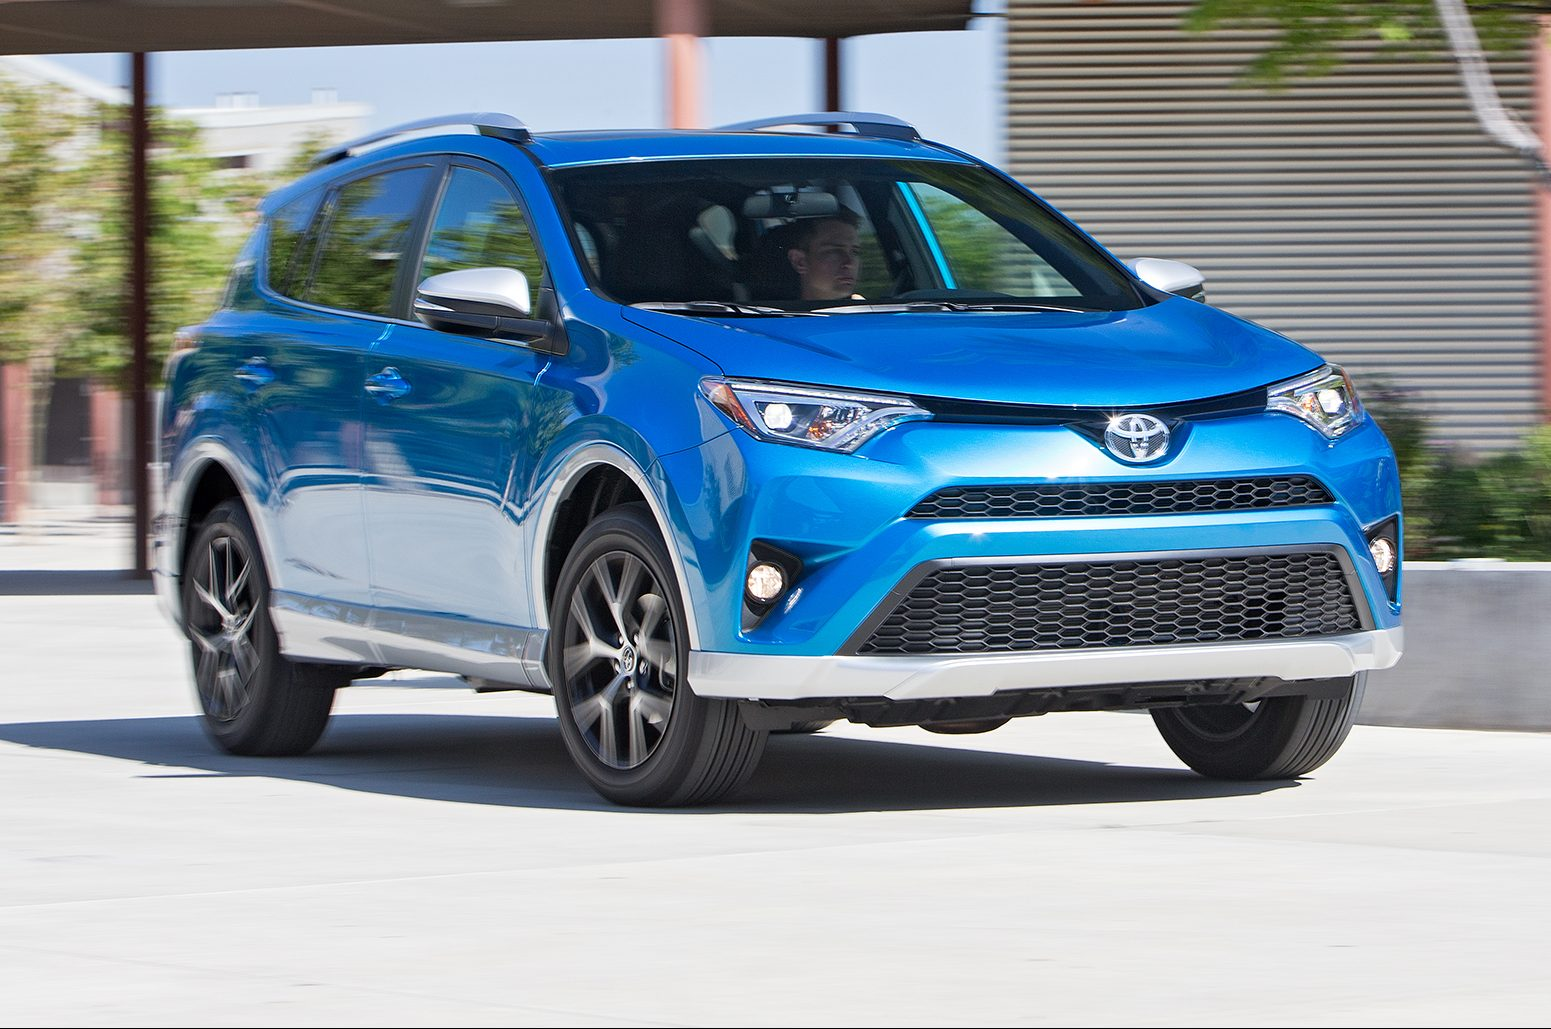 2016 Toyota Rav4 SE AWD front three quarter in motion